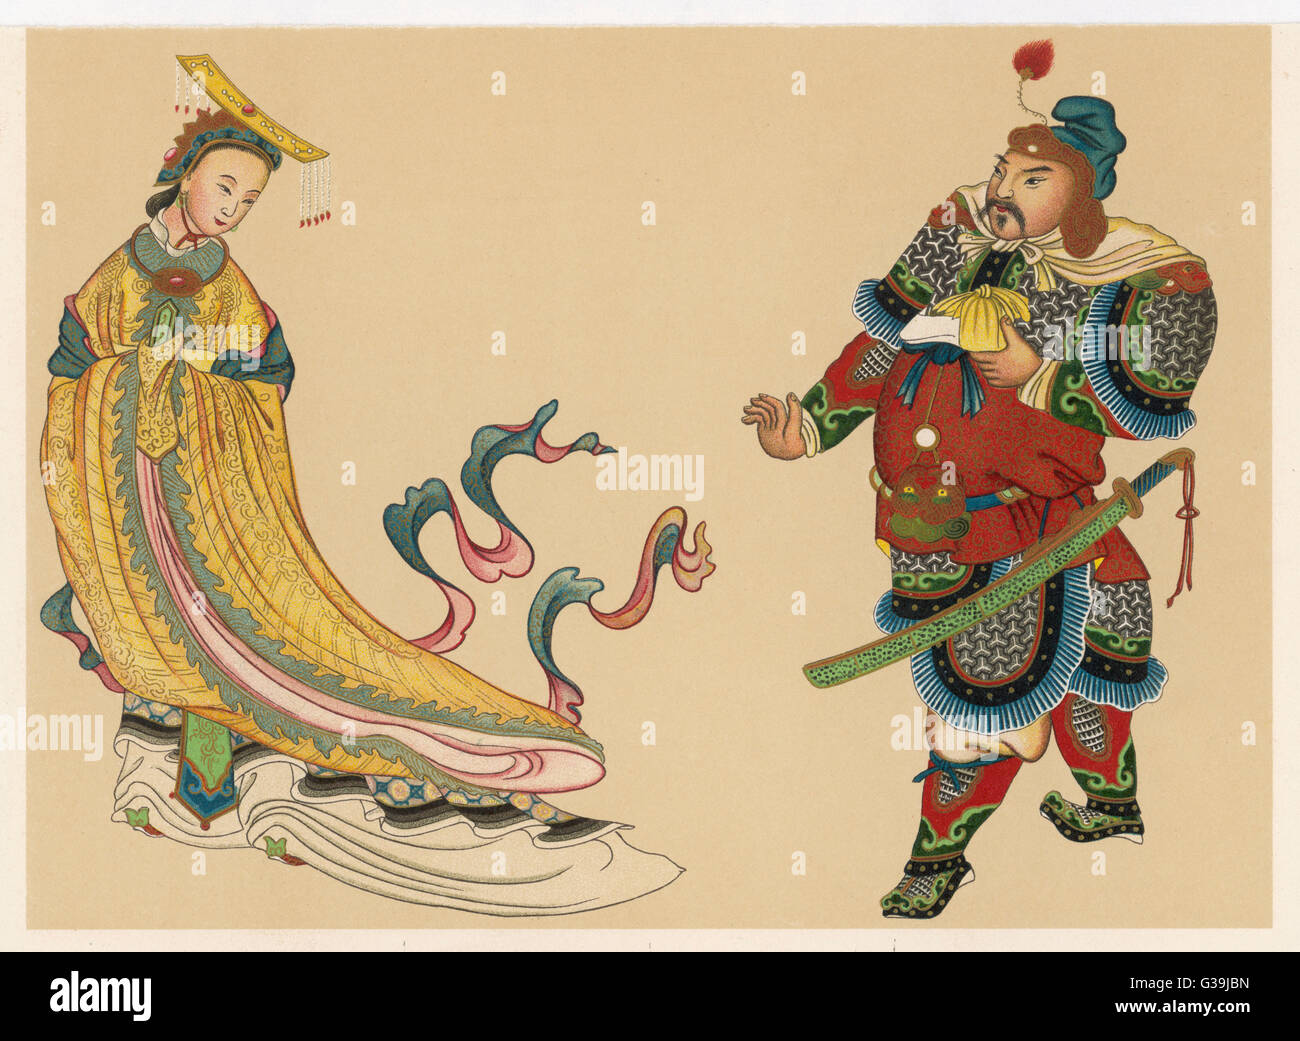 Wu Tse-Tien (ruled 625-705), Chinese Empress shown in her  yellow imperial robes. Also pictured is a courtier of - Stock Image